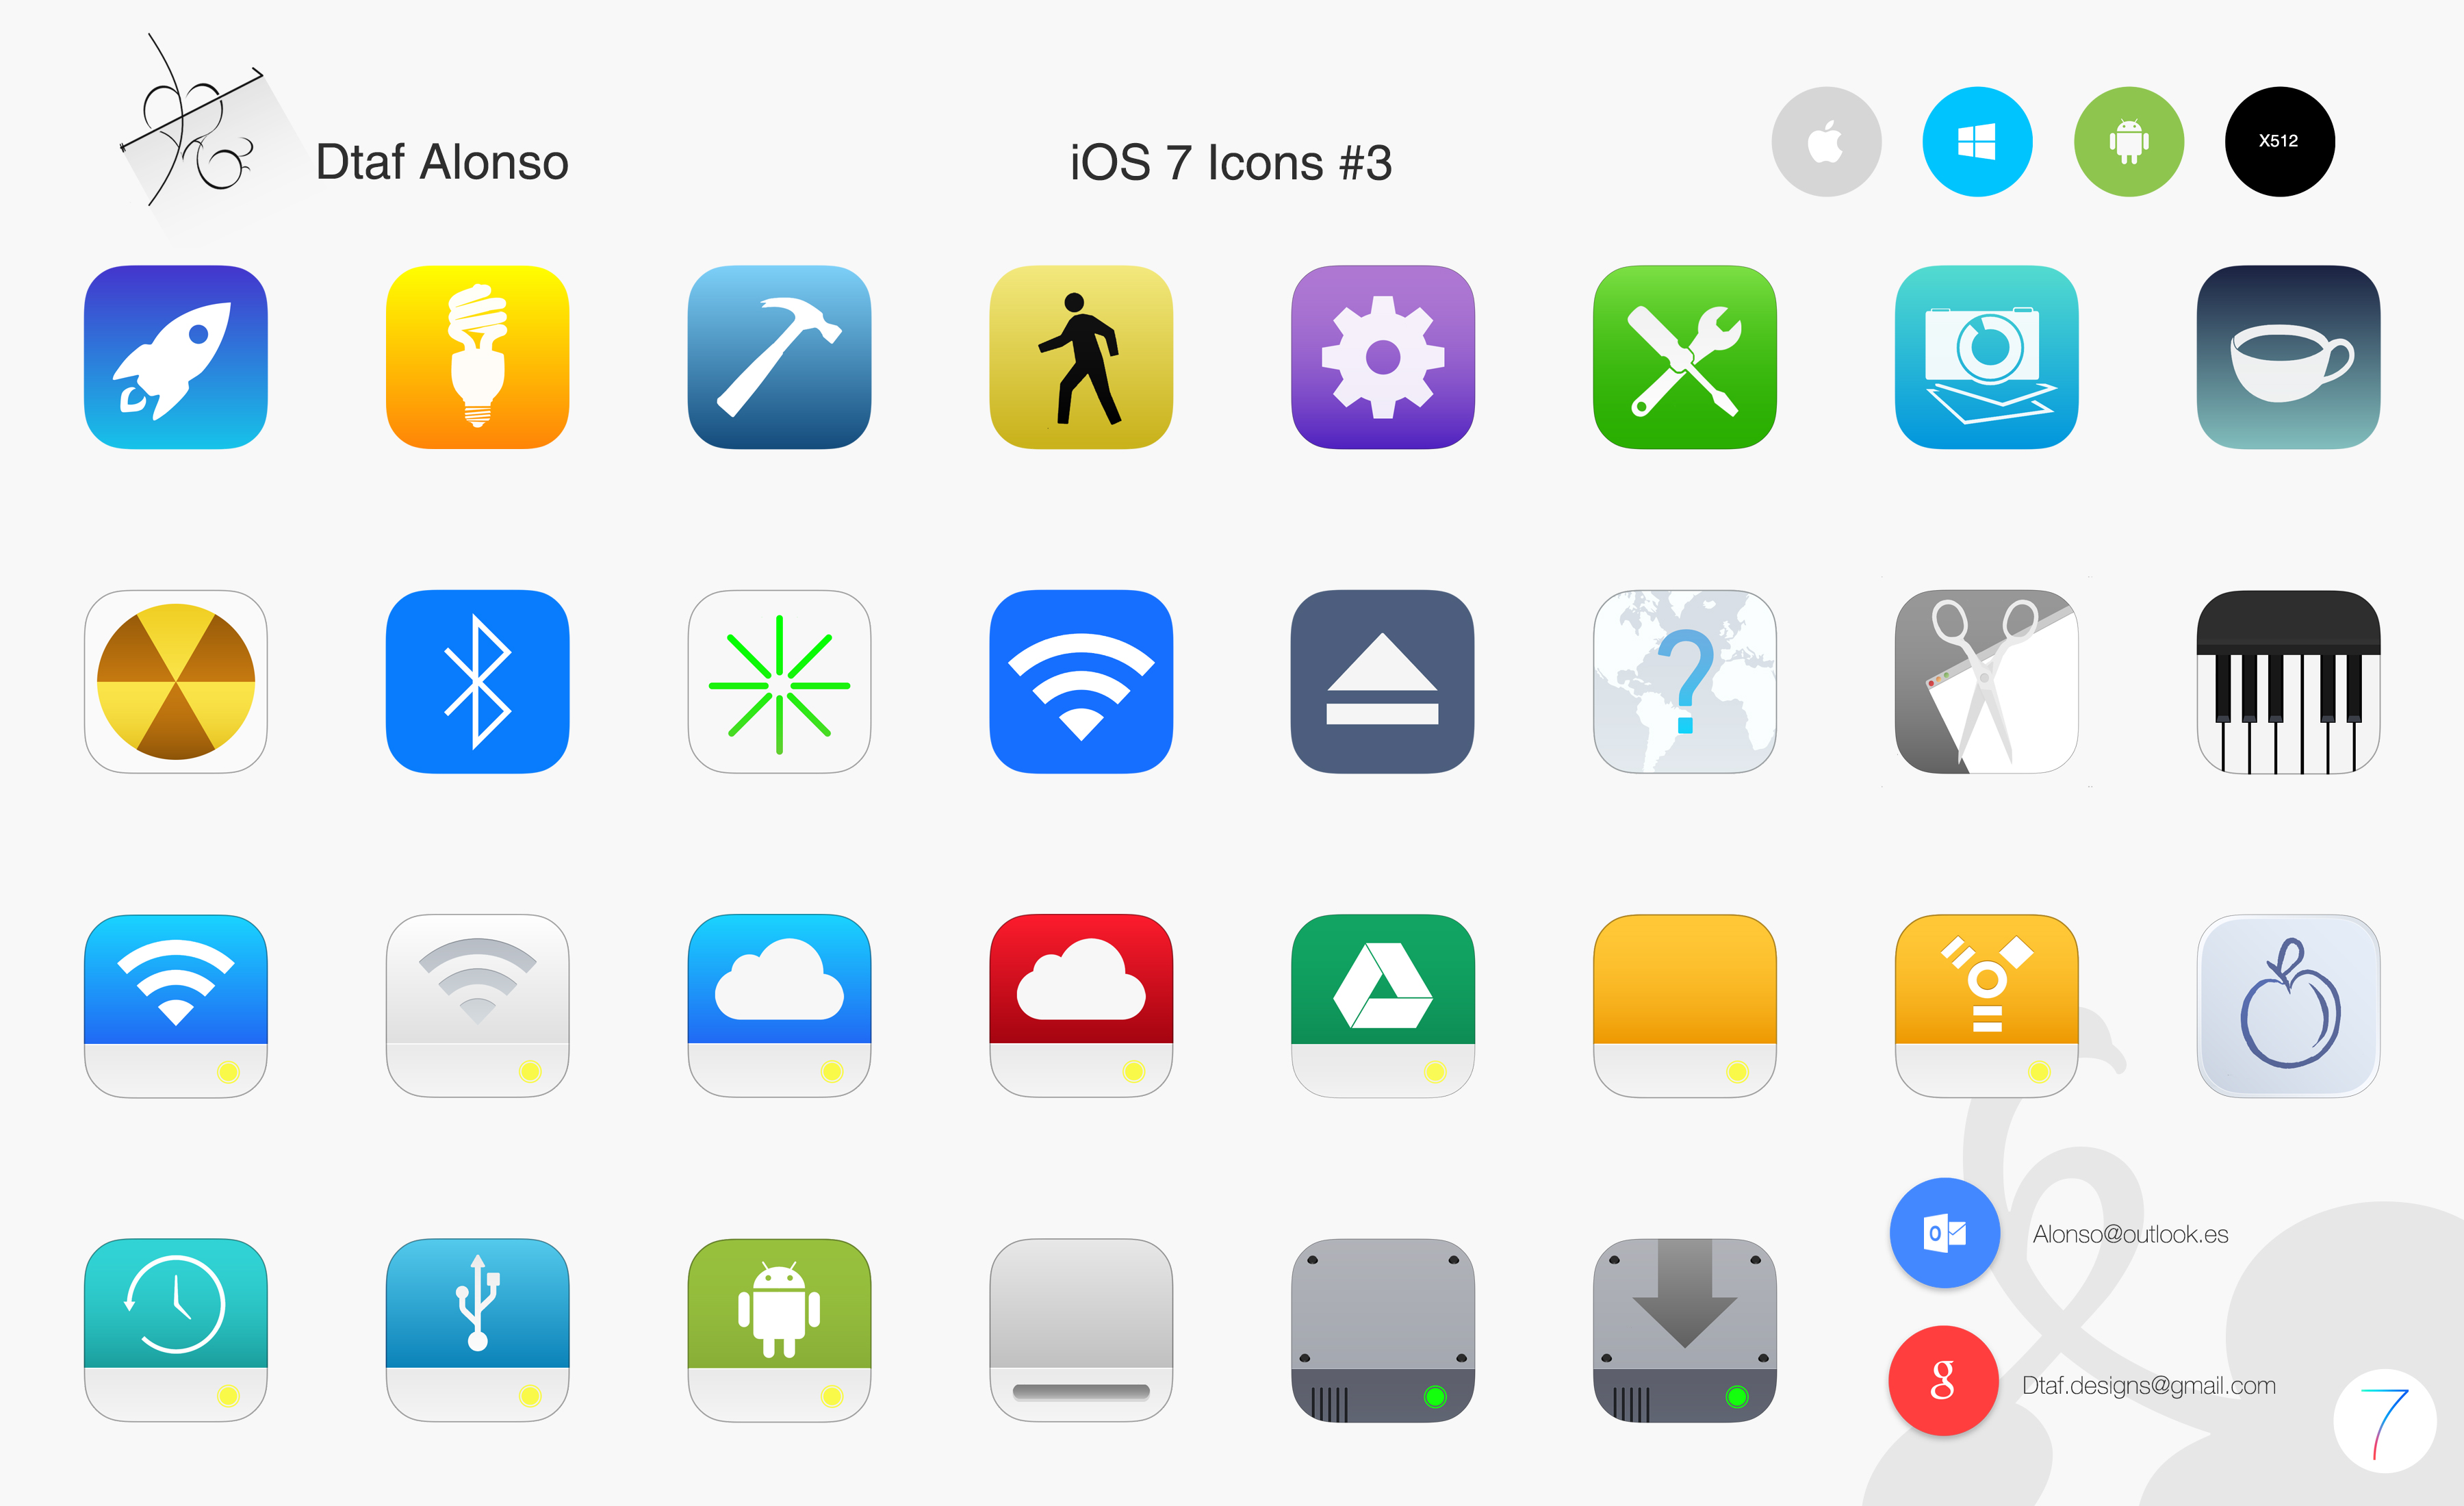 New 3d Wallpaper For Mobile Phone Ios 7 Icons 3 By Dtafalonso On Deviantart